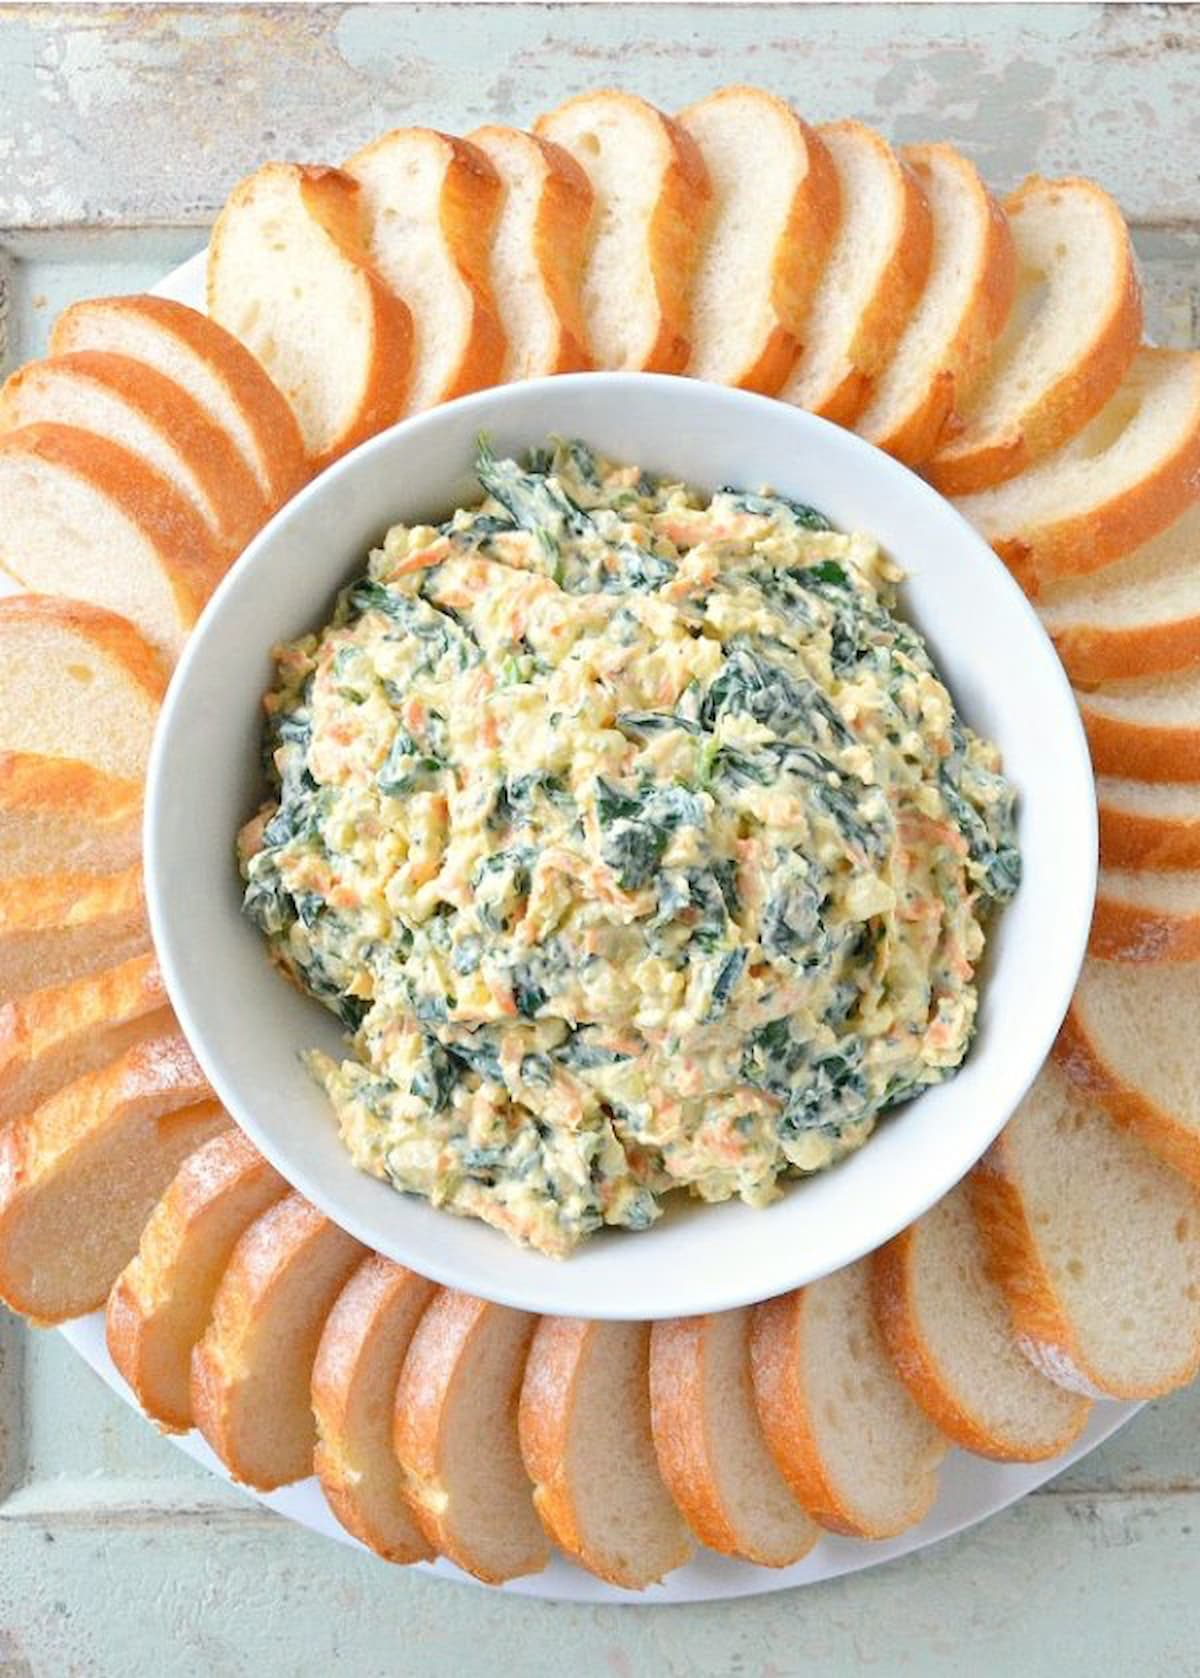 Homemade Spinach Dip Recipe from scratch in a white bowl with bageutte around the edge.